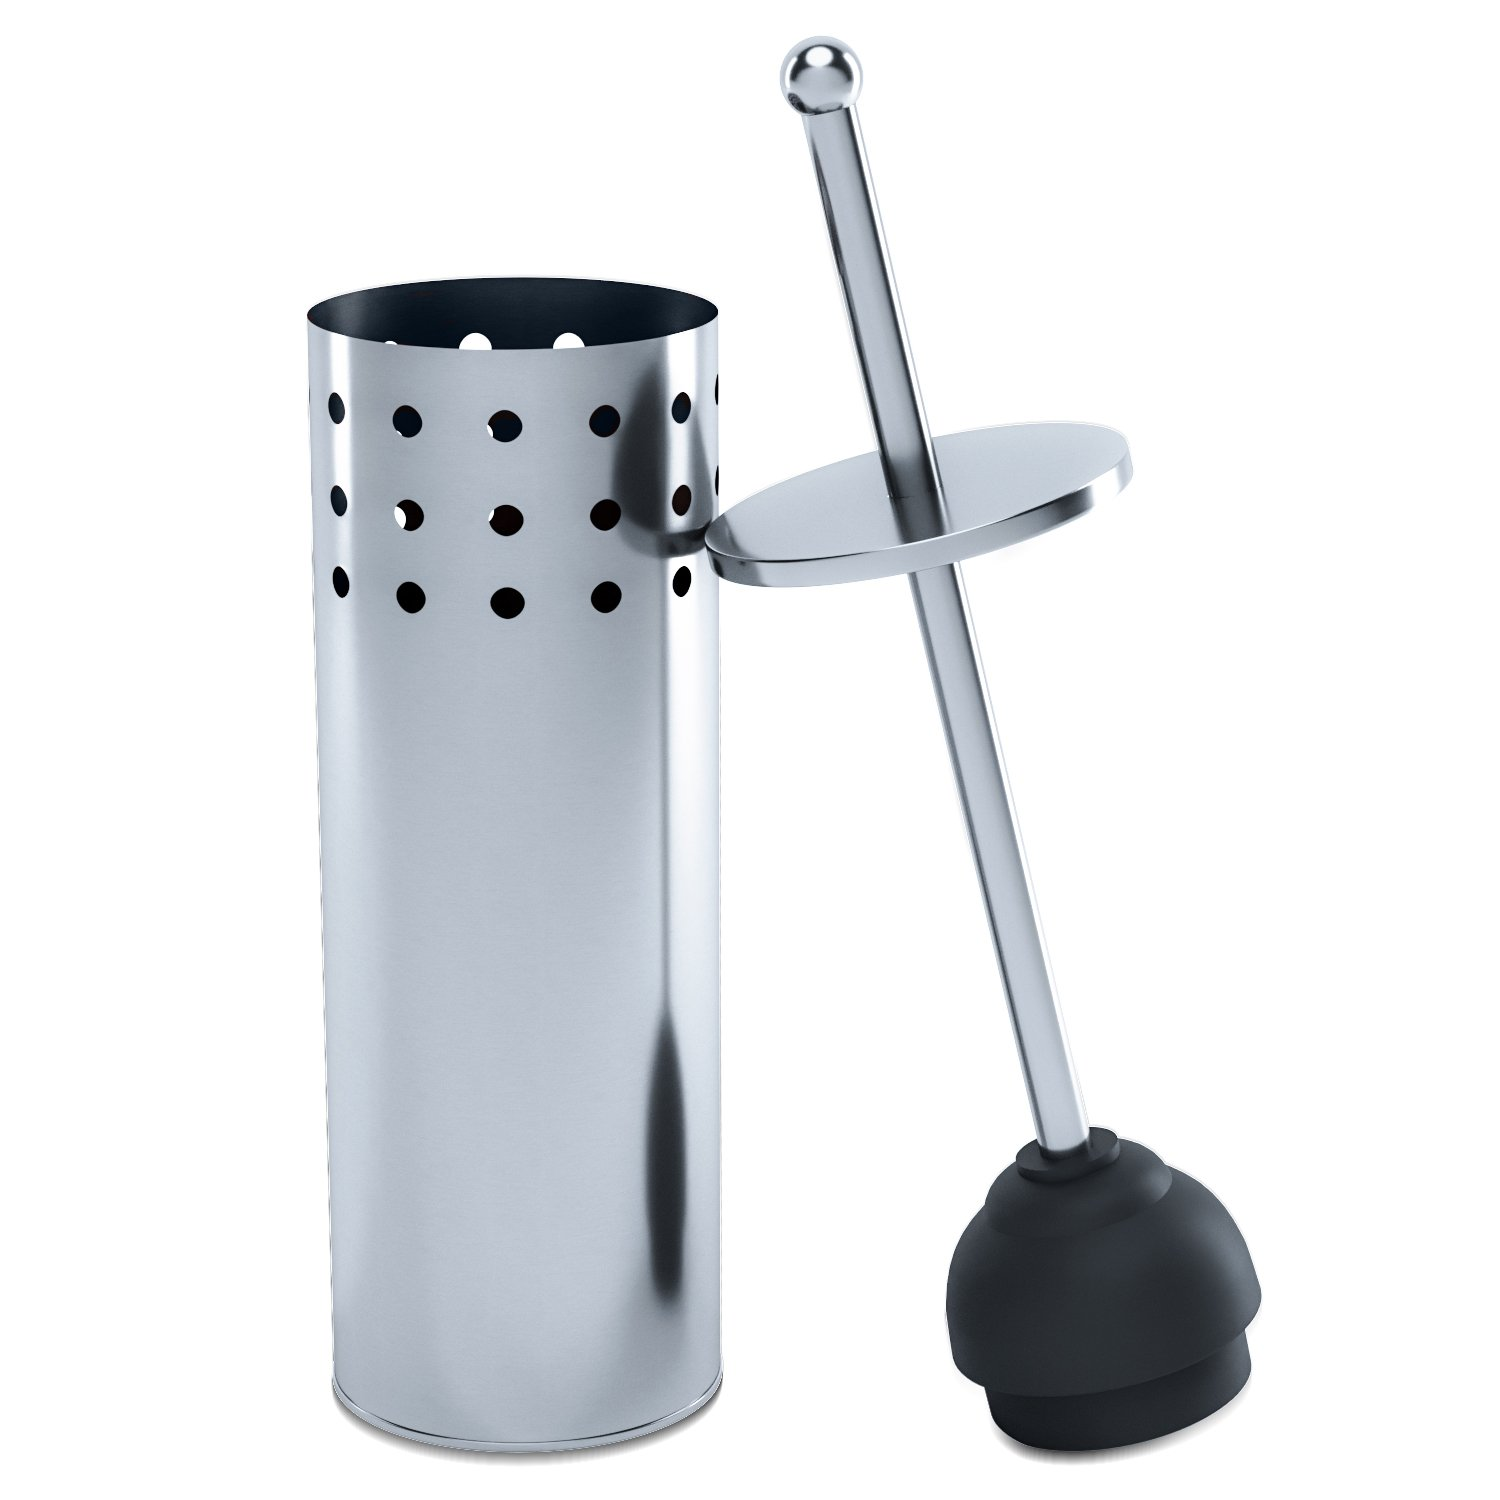 Home Intuition Stainless Steel Vented Toilet Plunger and Canister Holder Drip Cup, 1 Pack